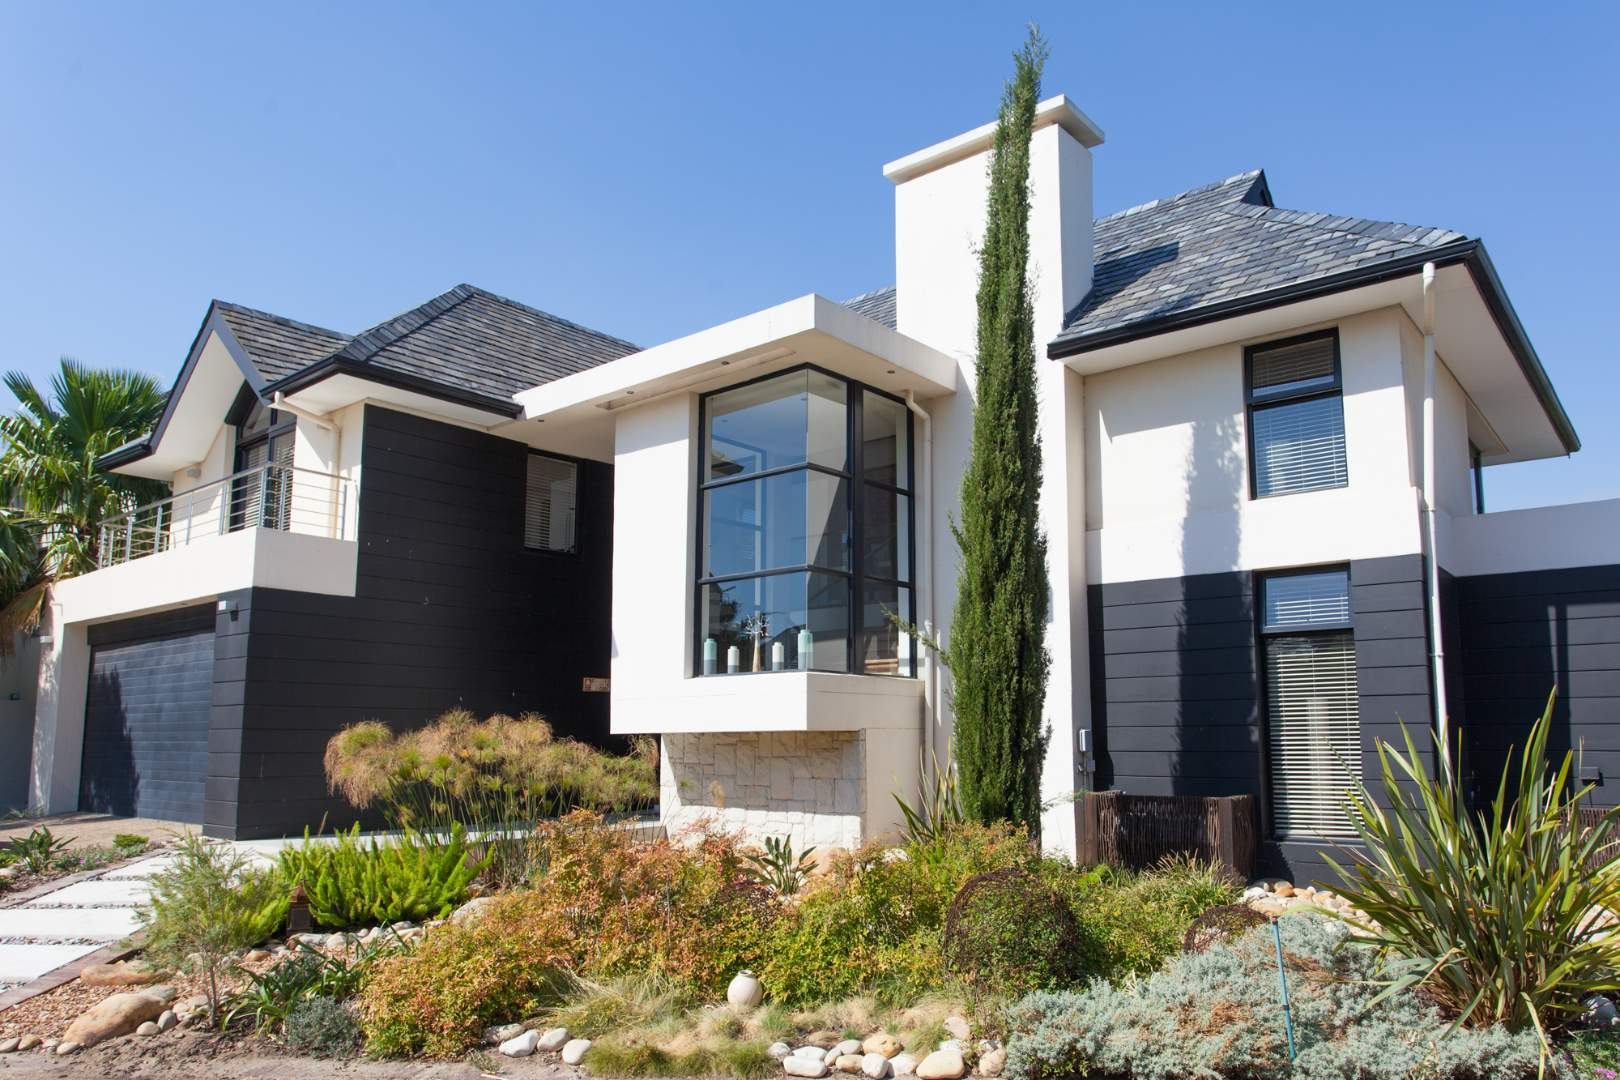 Fully equipped, two-bedroom house to rent in Pearl Valley at Val de Vie Estate